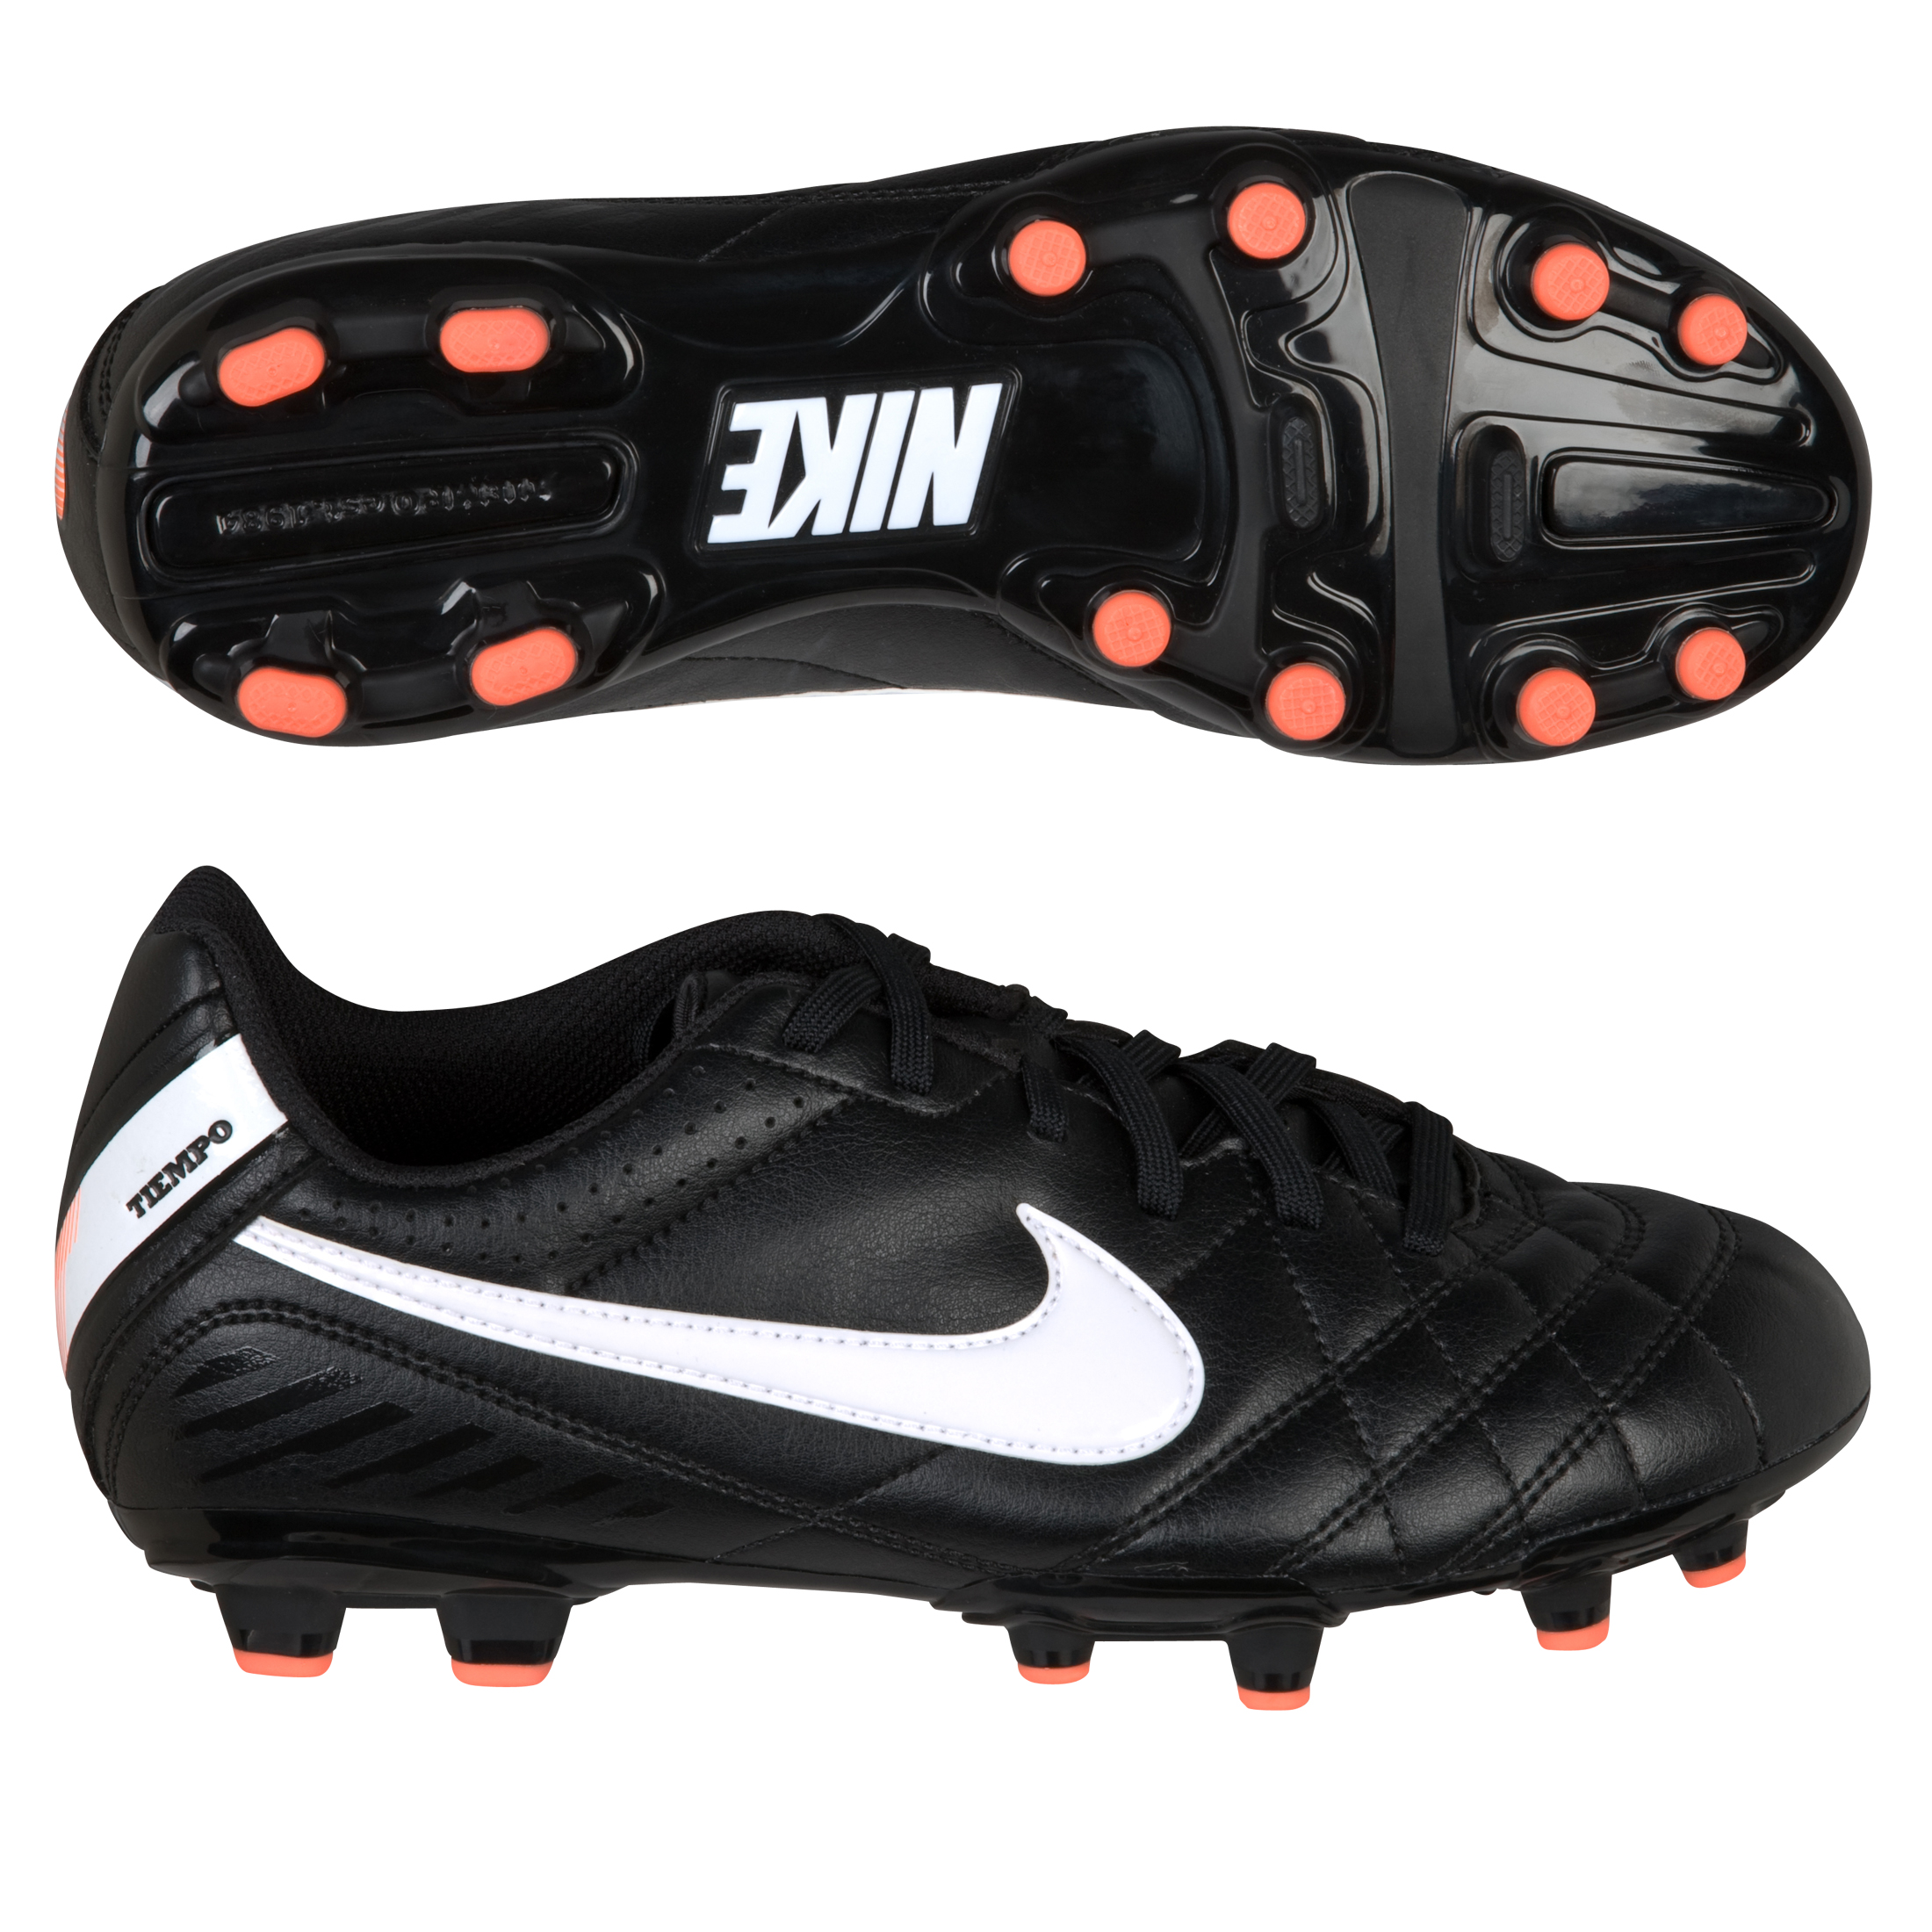 Nike Tiempo Natural IV Firm Ground Football Boots - Black/White/Total Orange - Kids